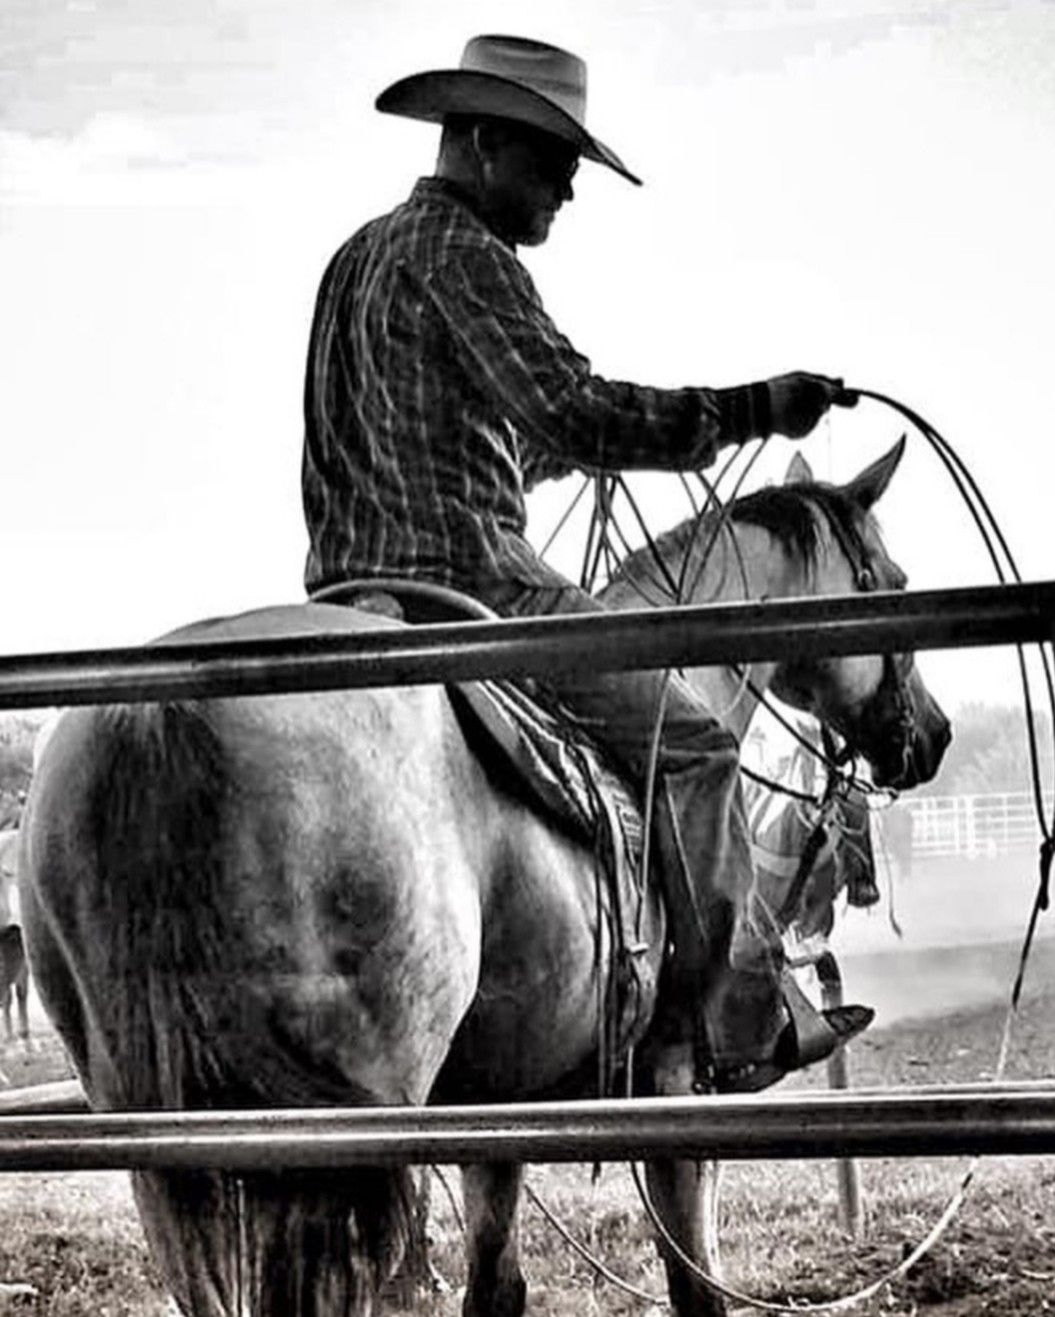 Pin by Jennifer Amos on country My buddy, Horses